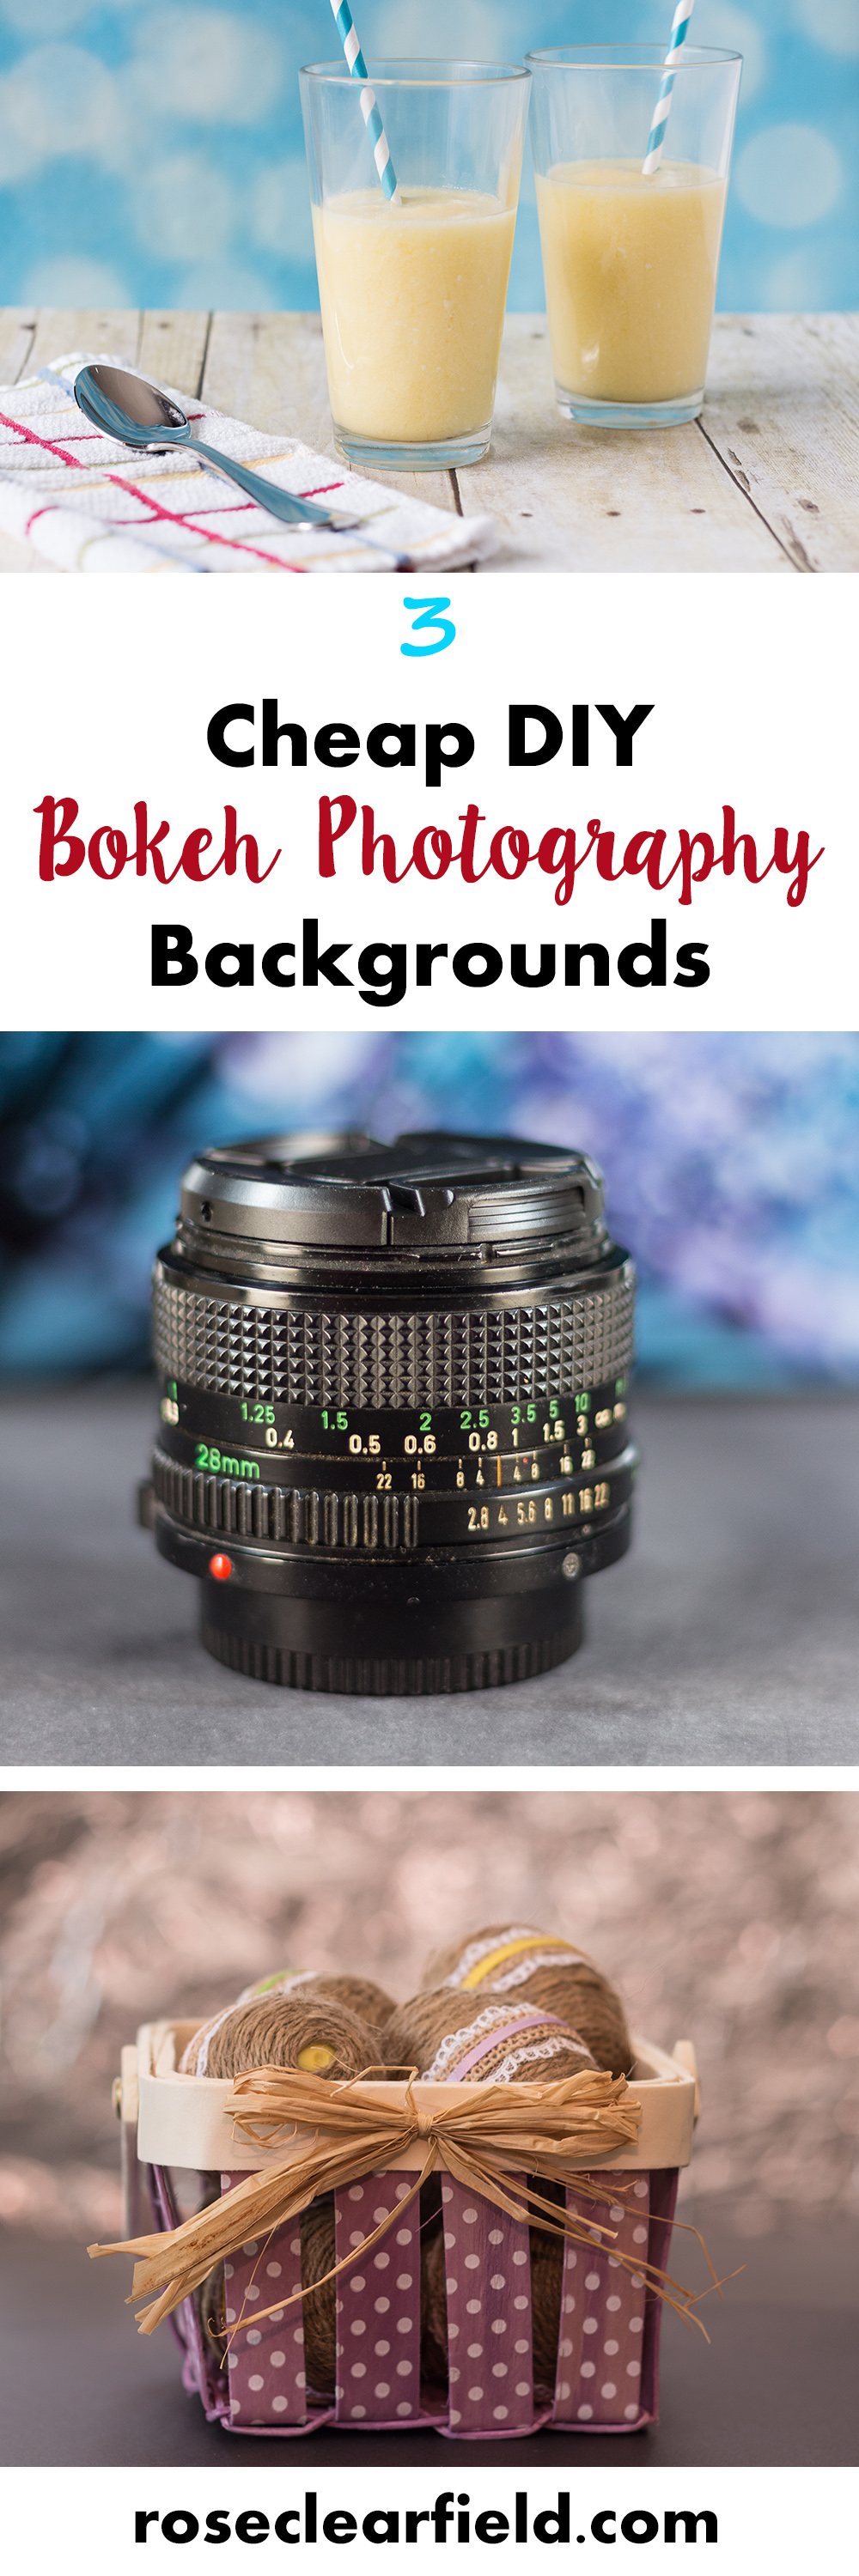 3 Cheap DIY Bokeh Photography Backgrounds | http://www.roseclearfield.com